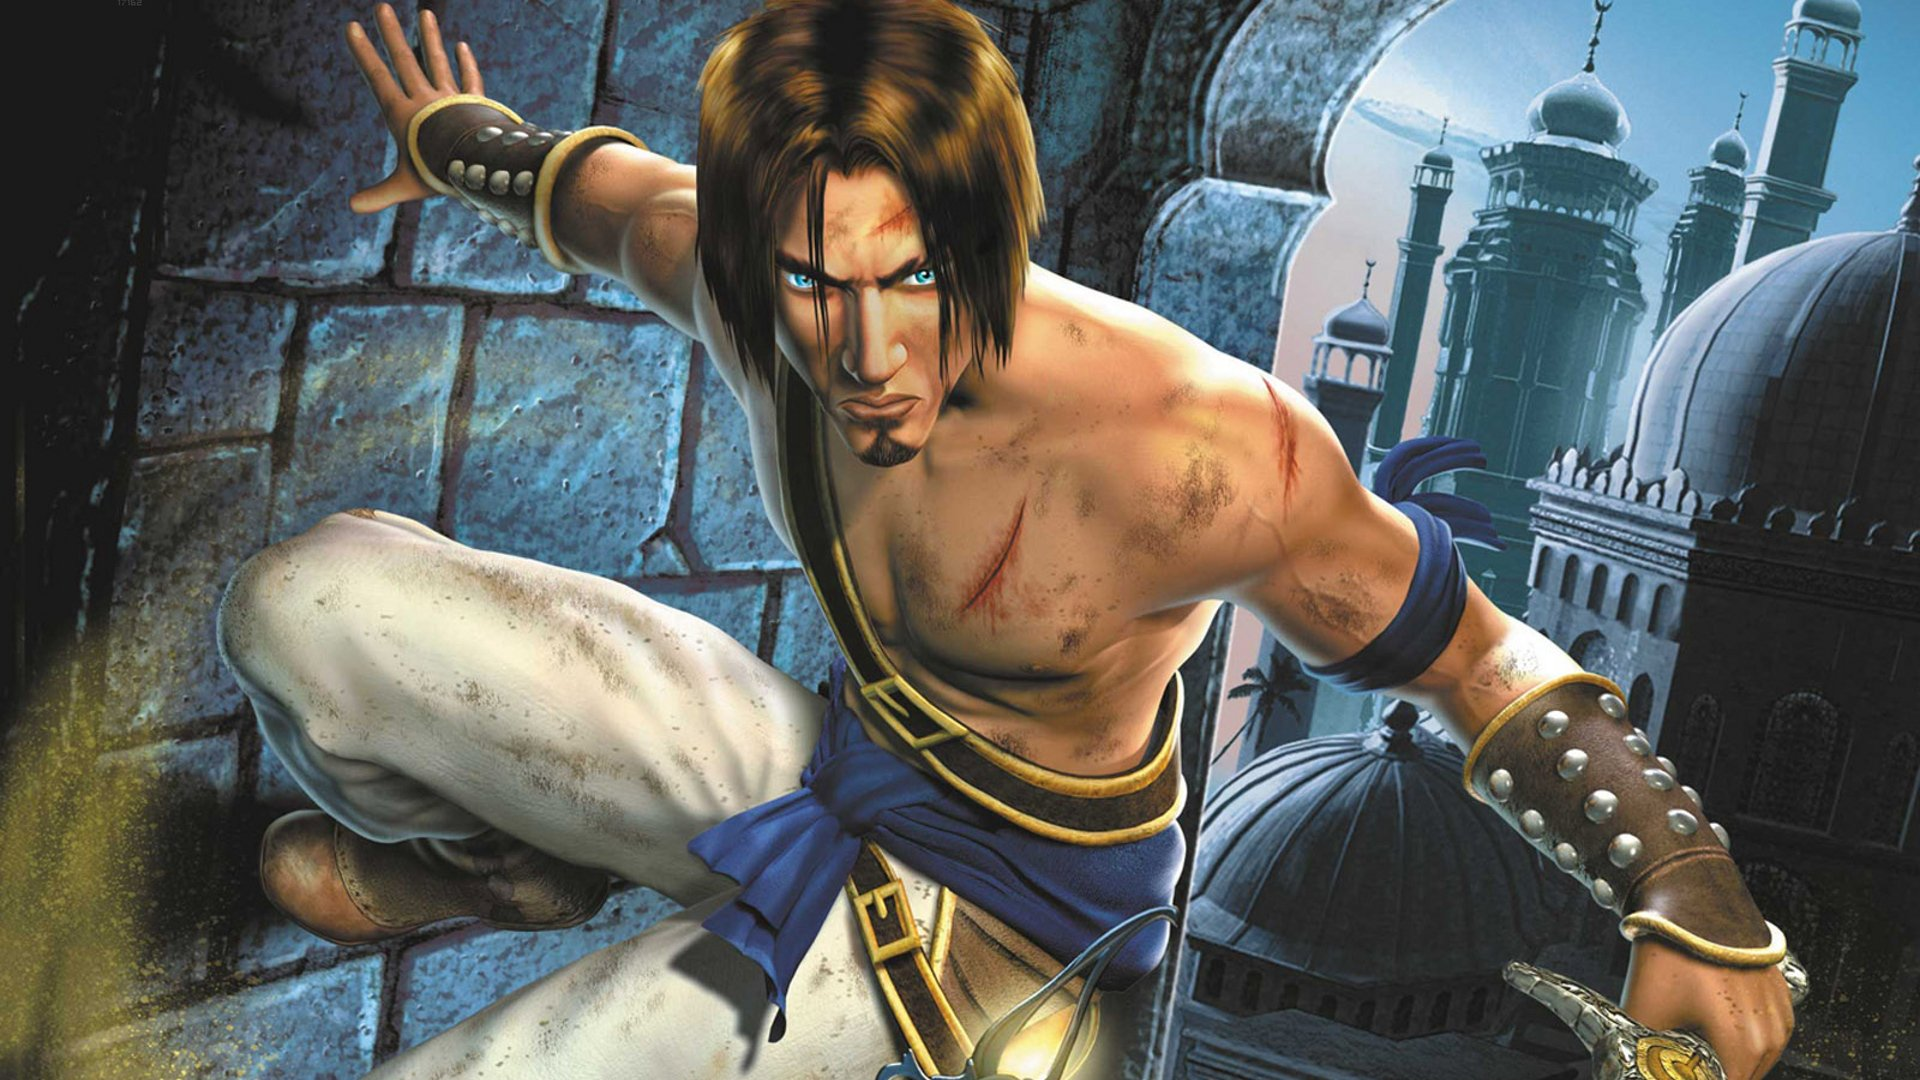 Prince of Persia remake rumor appears online ahead of Ubisoft Forward September event